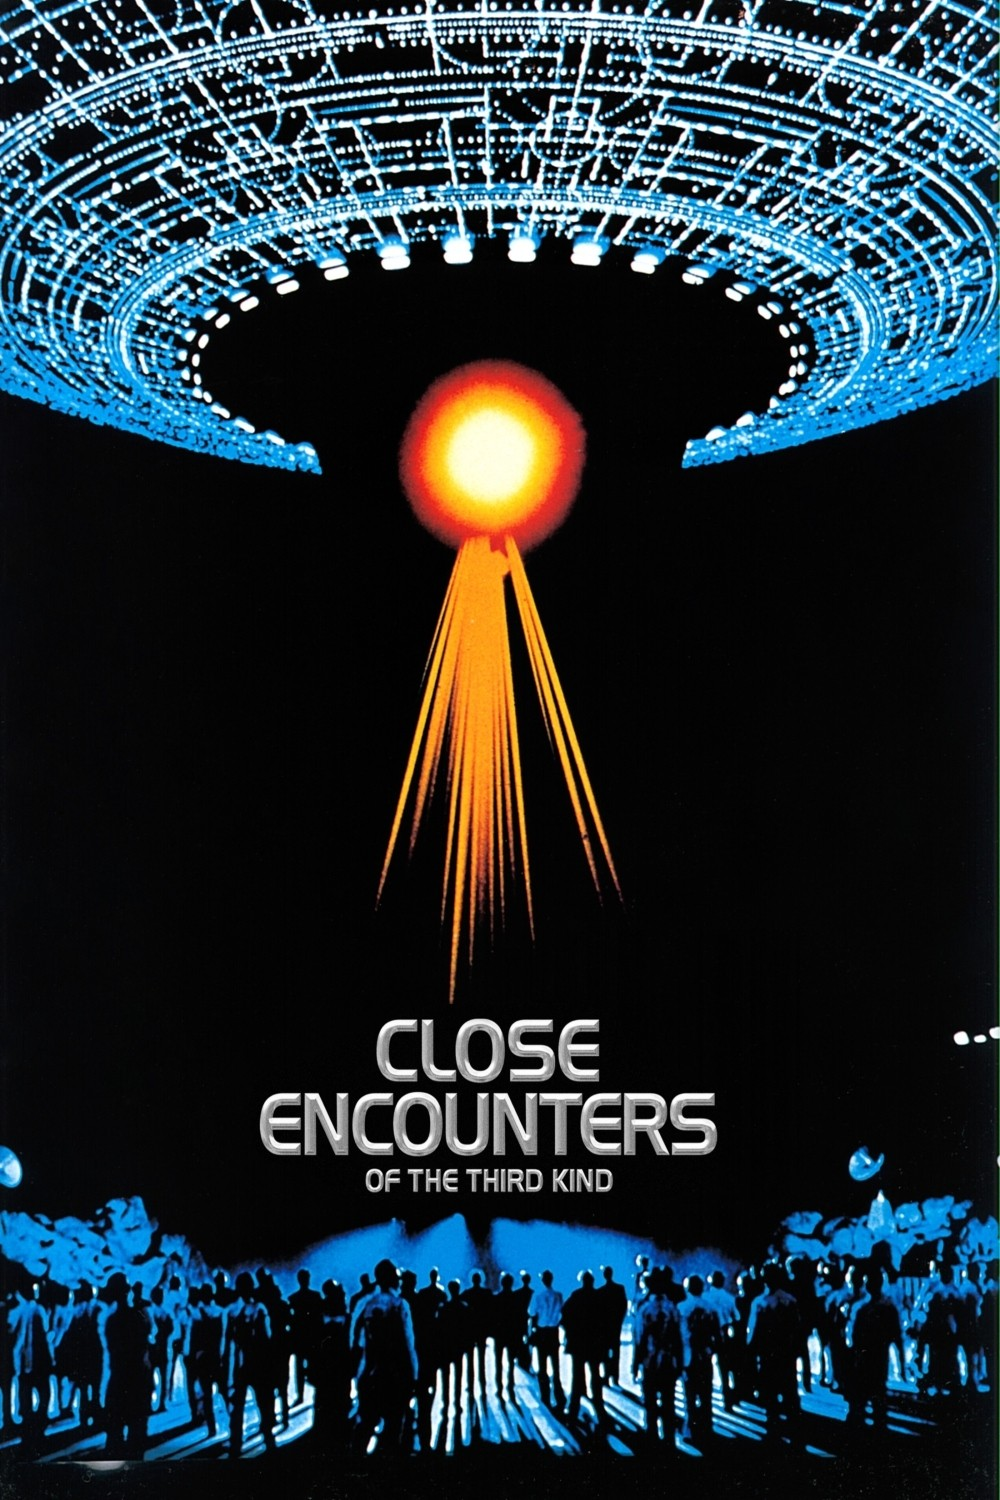 a film review of close encounters of the third kind This is the 40th anniversary of the theatrical release of this spielberg classic, now fully restored for this 4k release with the original 35mm.